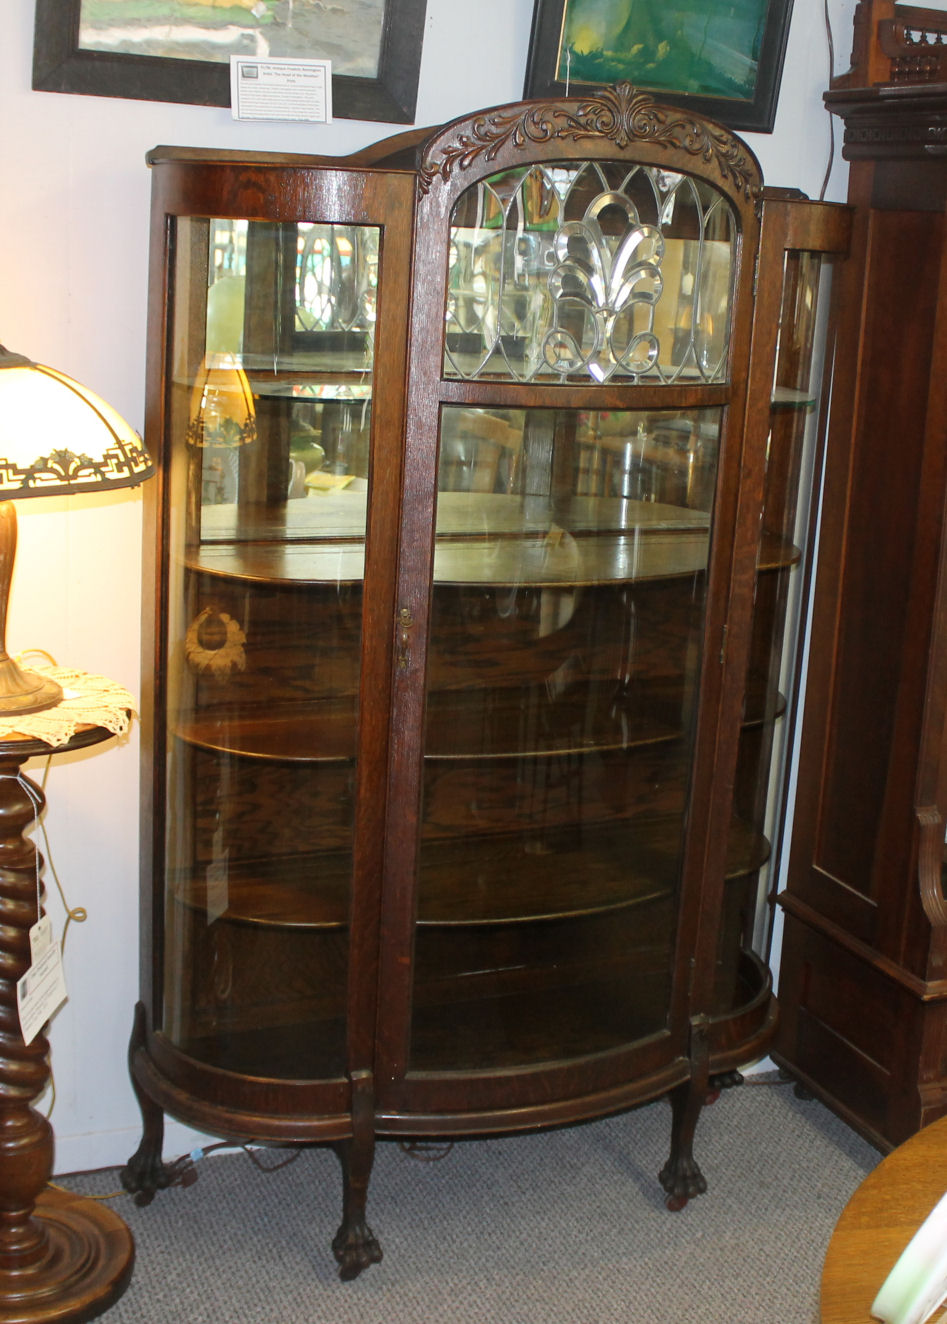 Bargain Johns Antiques  Blog Archive Oak China Cabinet with Beveled leaded glass window